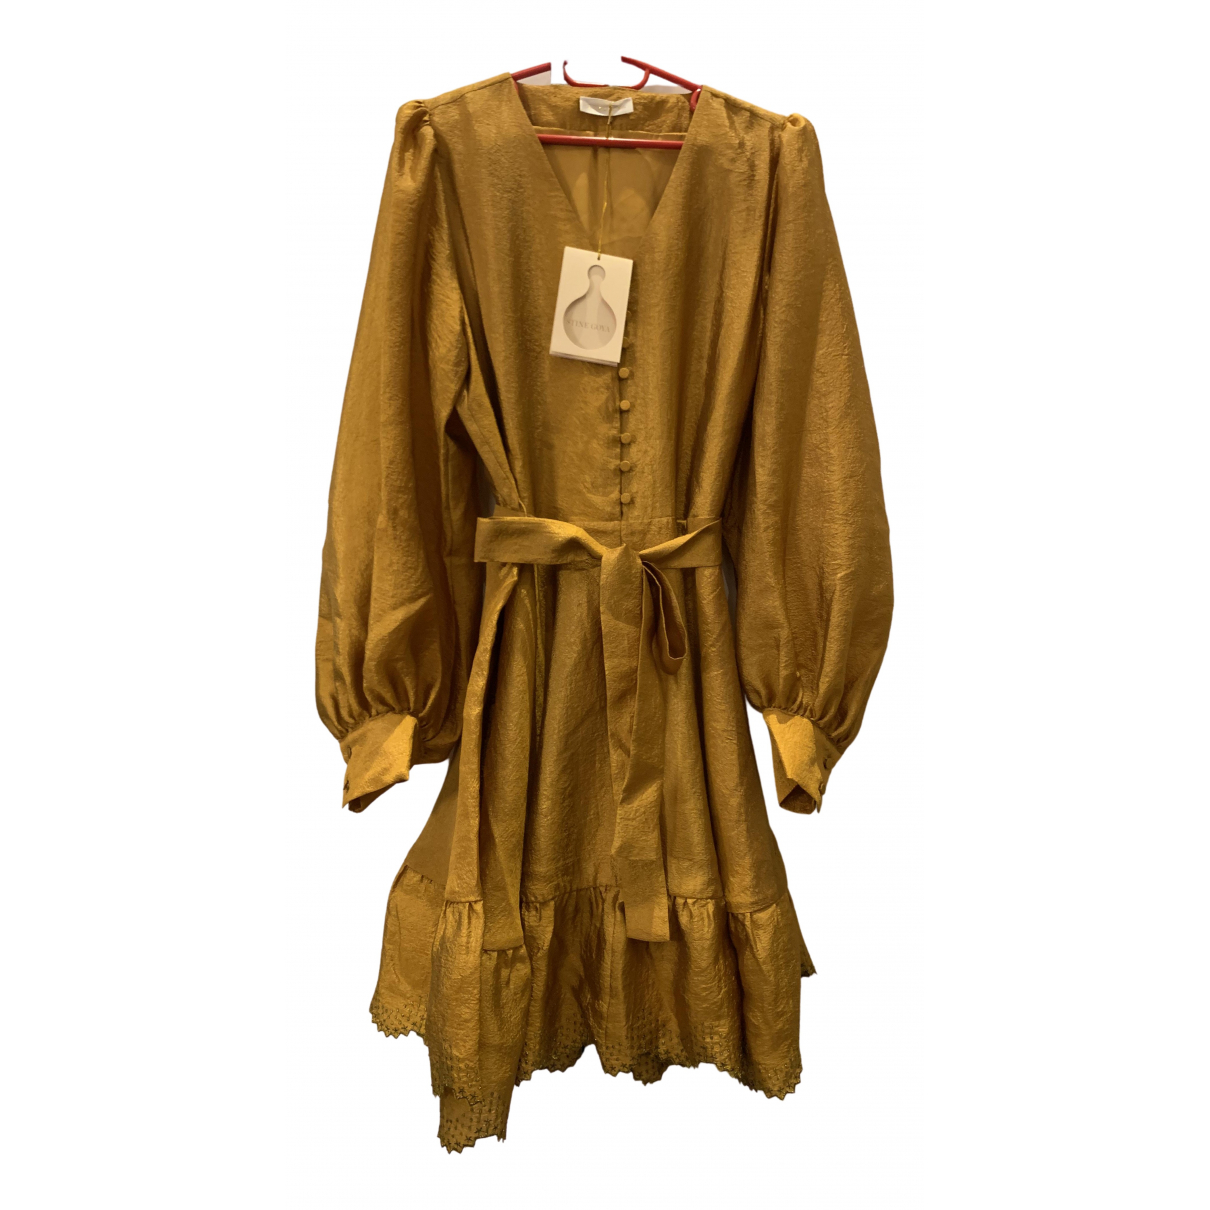 Stine Goya \N Gold dress for Women M International